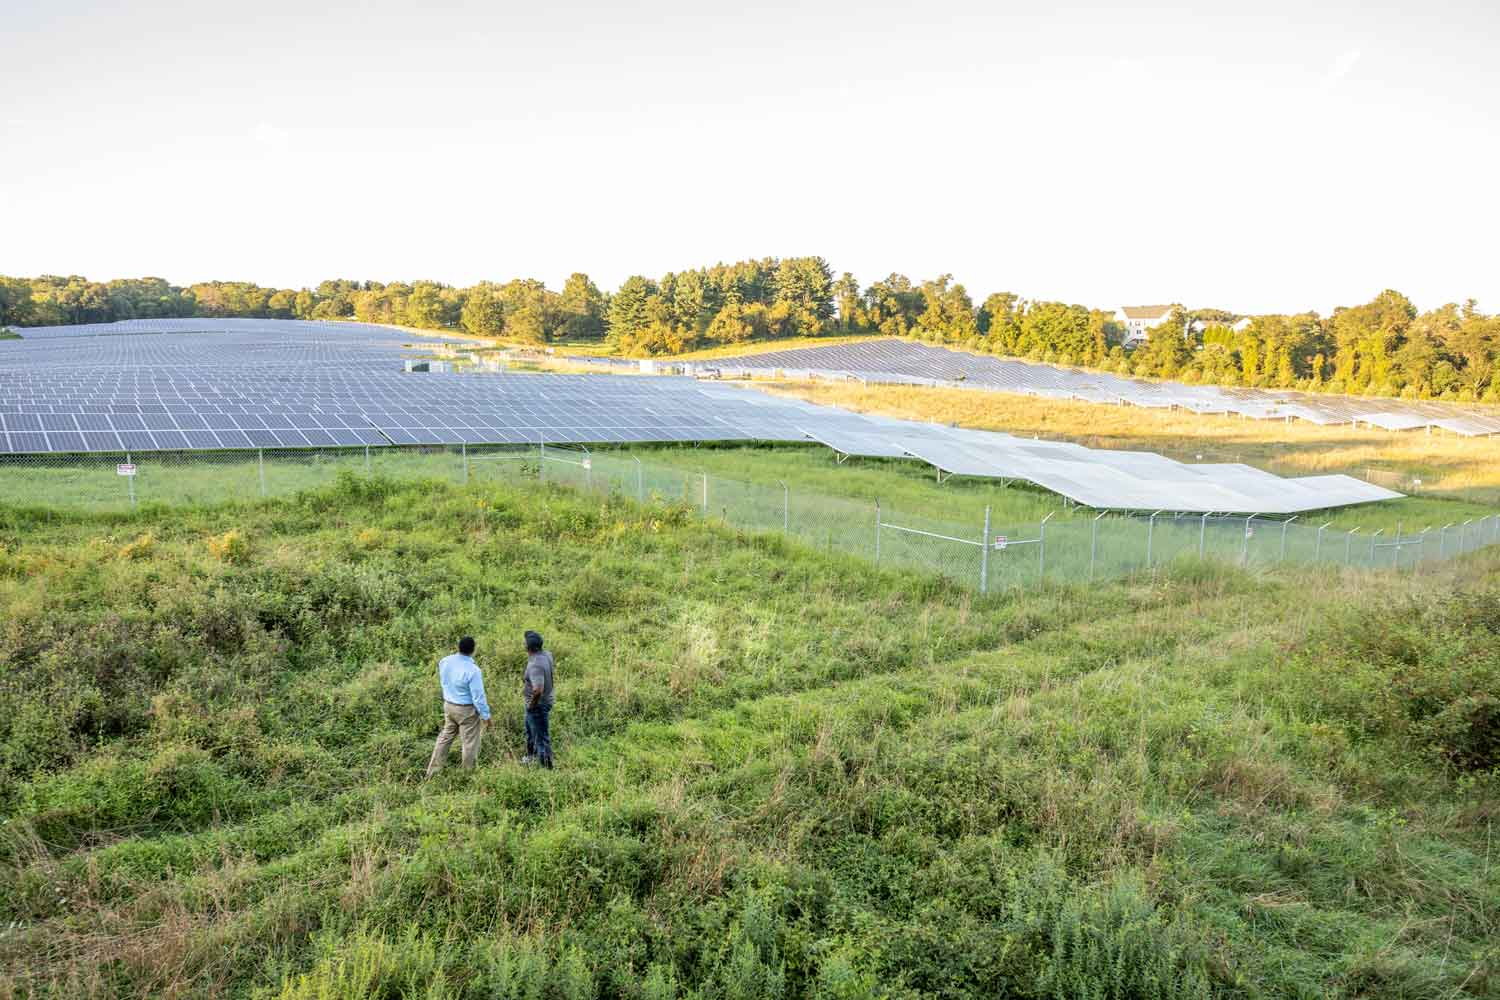 An aerial shot of Rob and Walter in a field looking over a large solar panel farm.